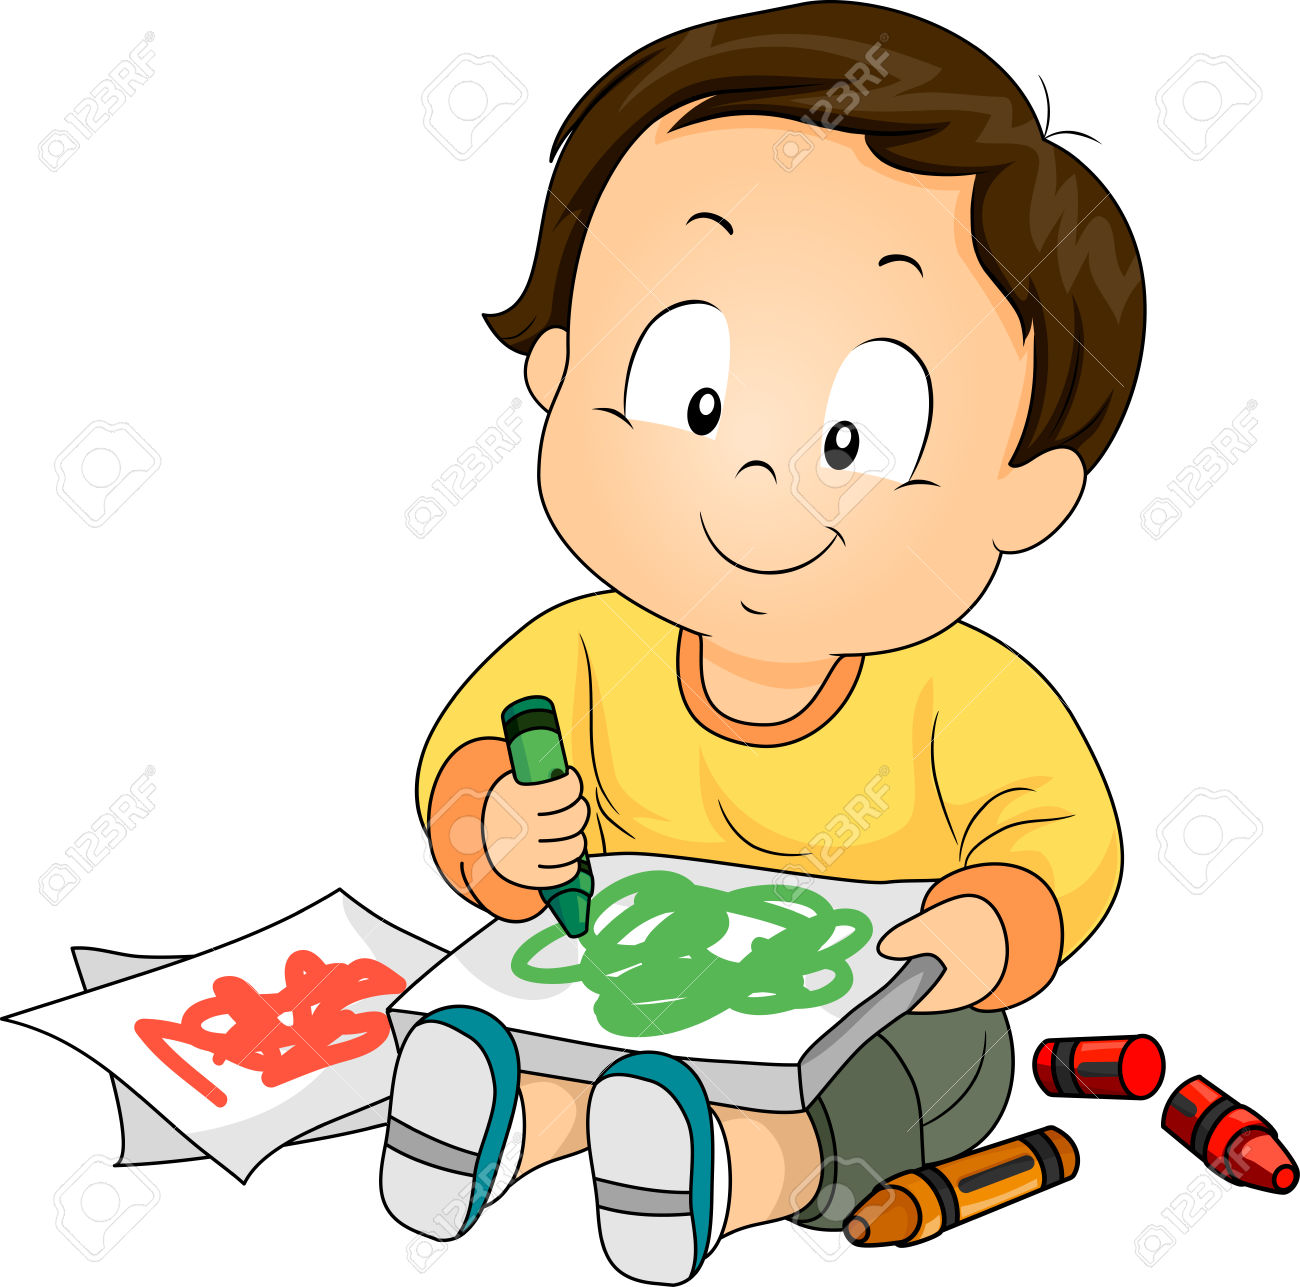 Drawing clipart childrens art. Child free download best